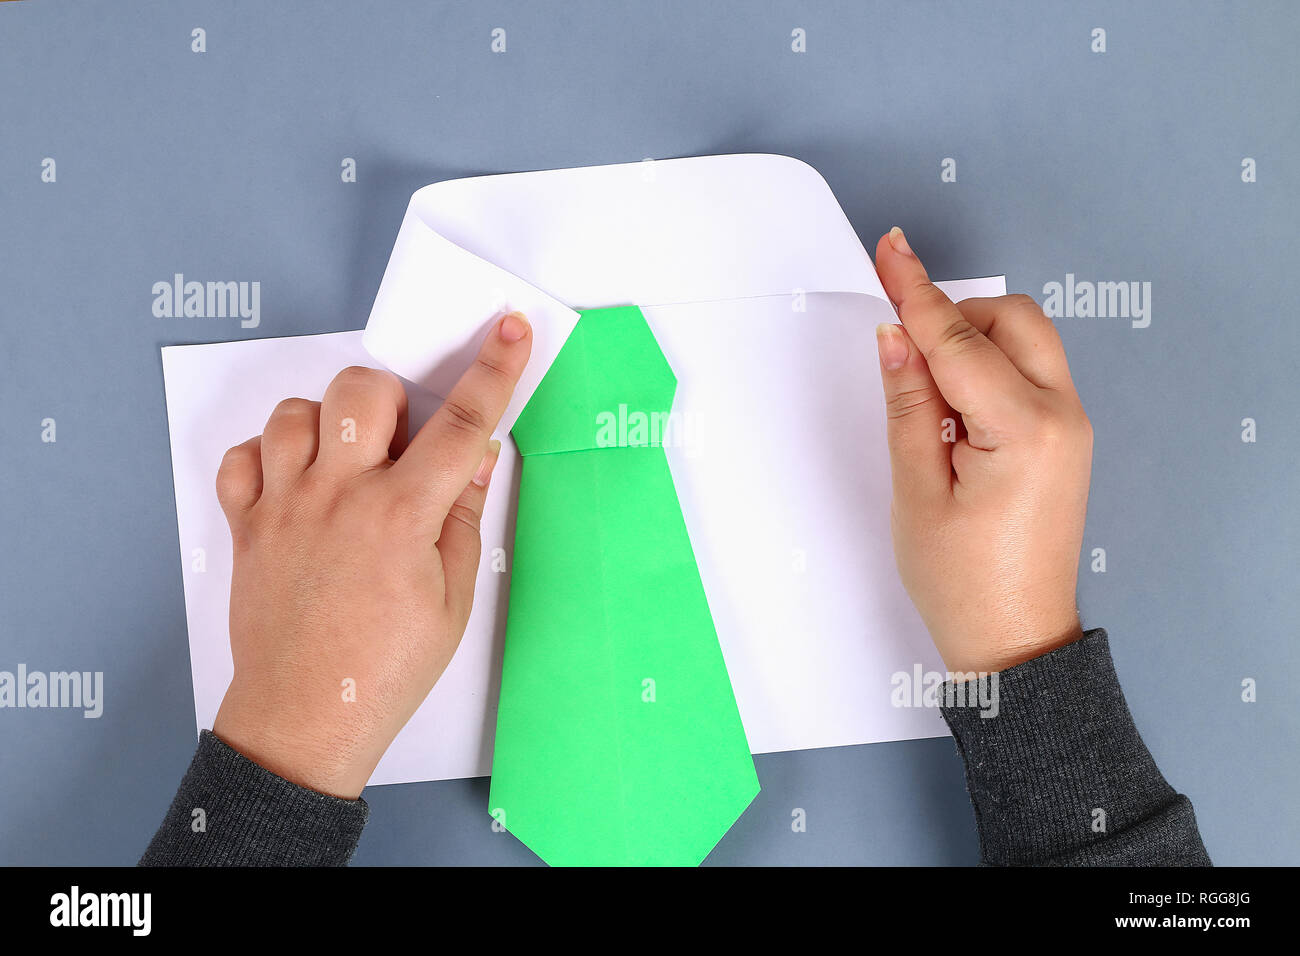 Diy White Shirt Paper With Green Tie Epaulets Ideas Gift Decor